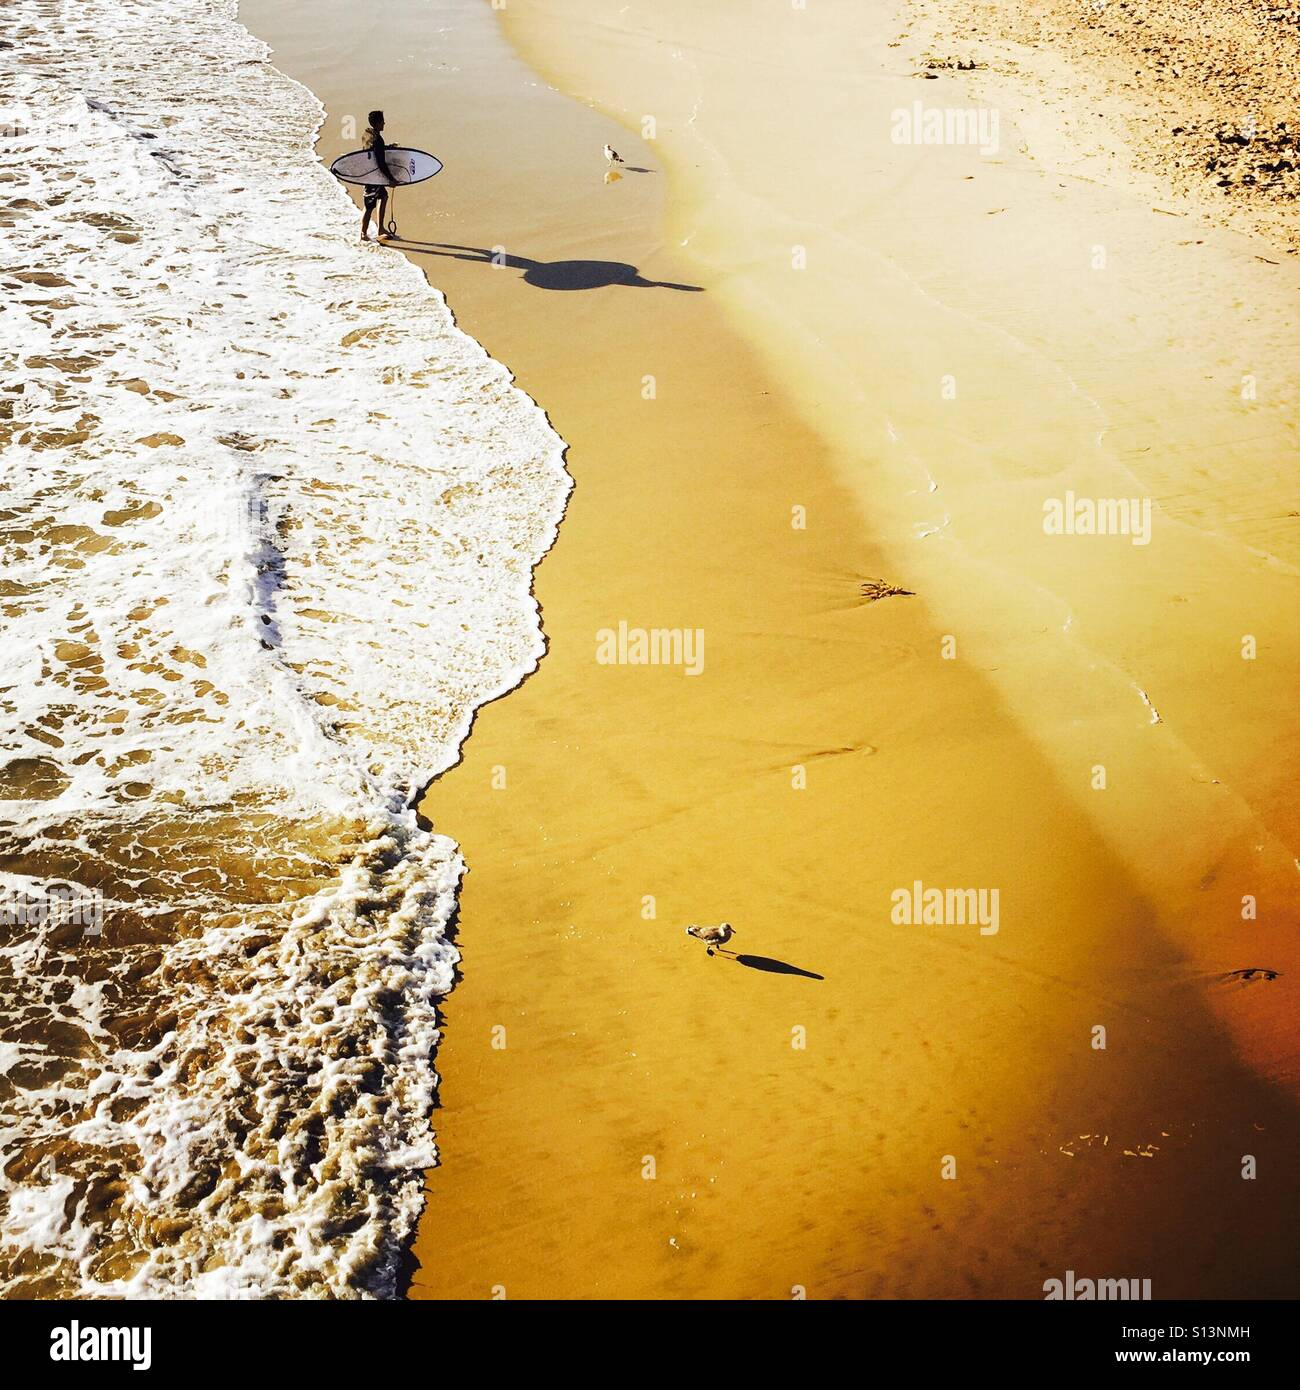 A male Surfer walks up the beach after surfing. Manhattan Beach, California USA. - Stock Image